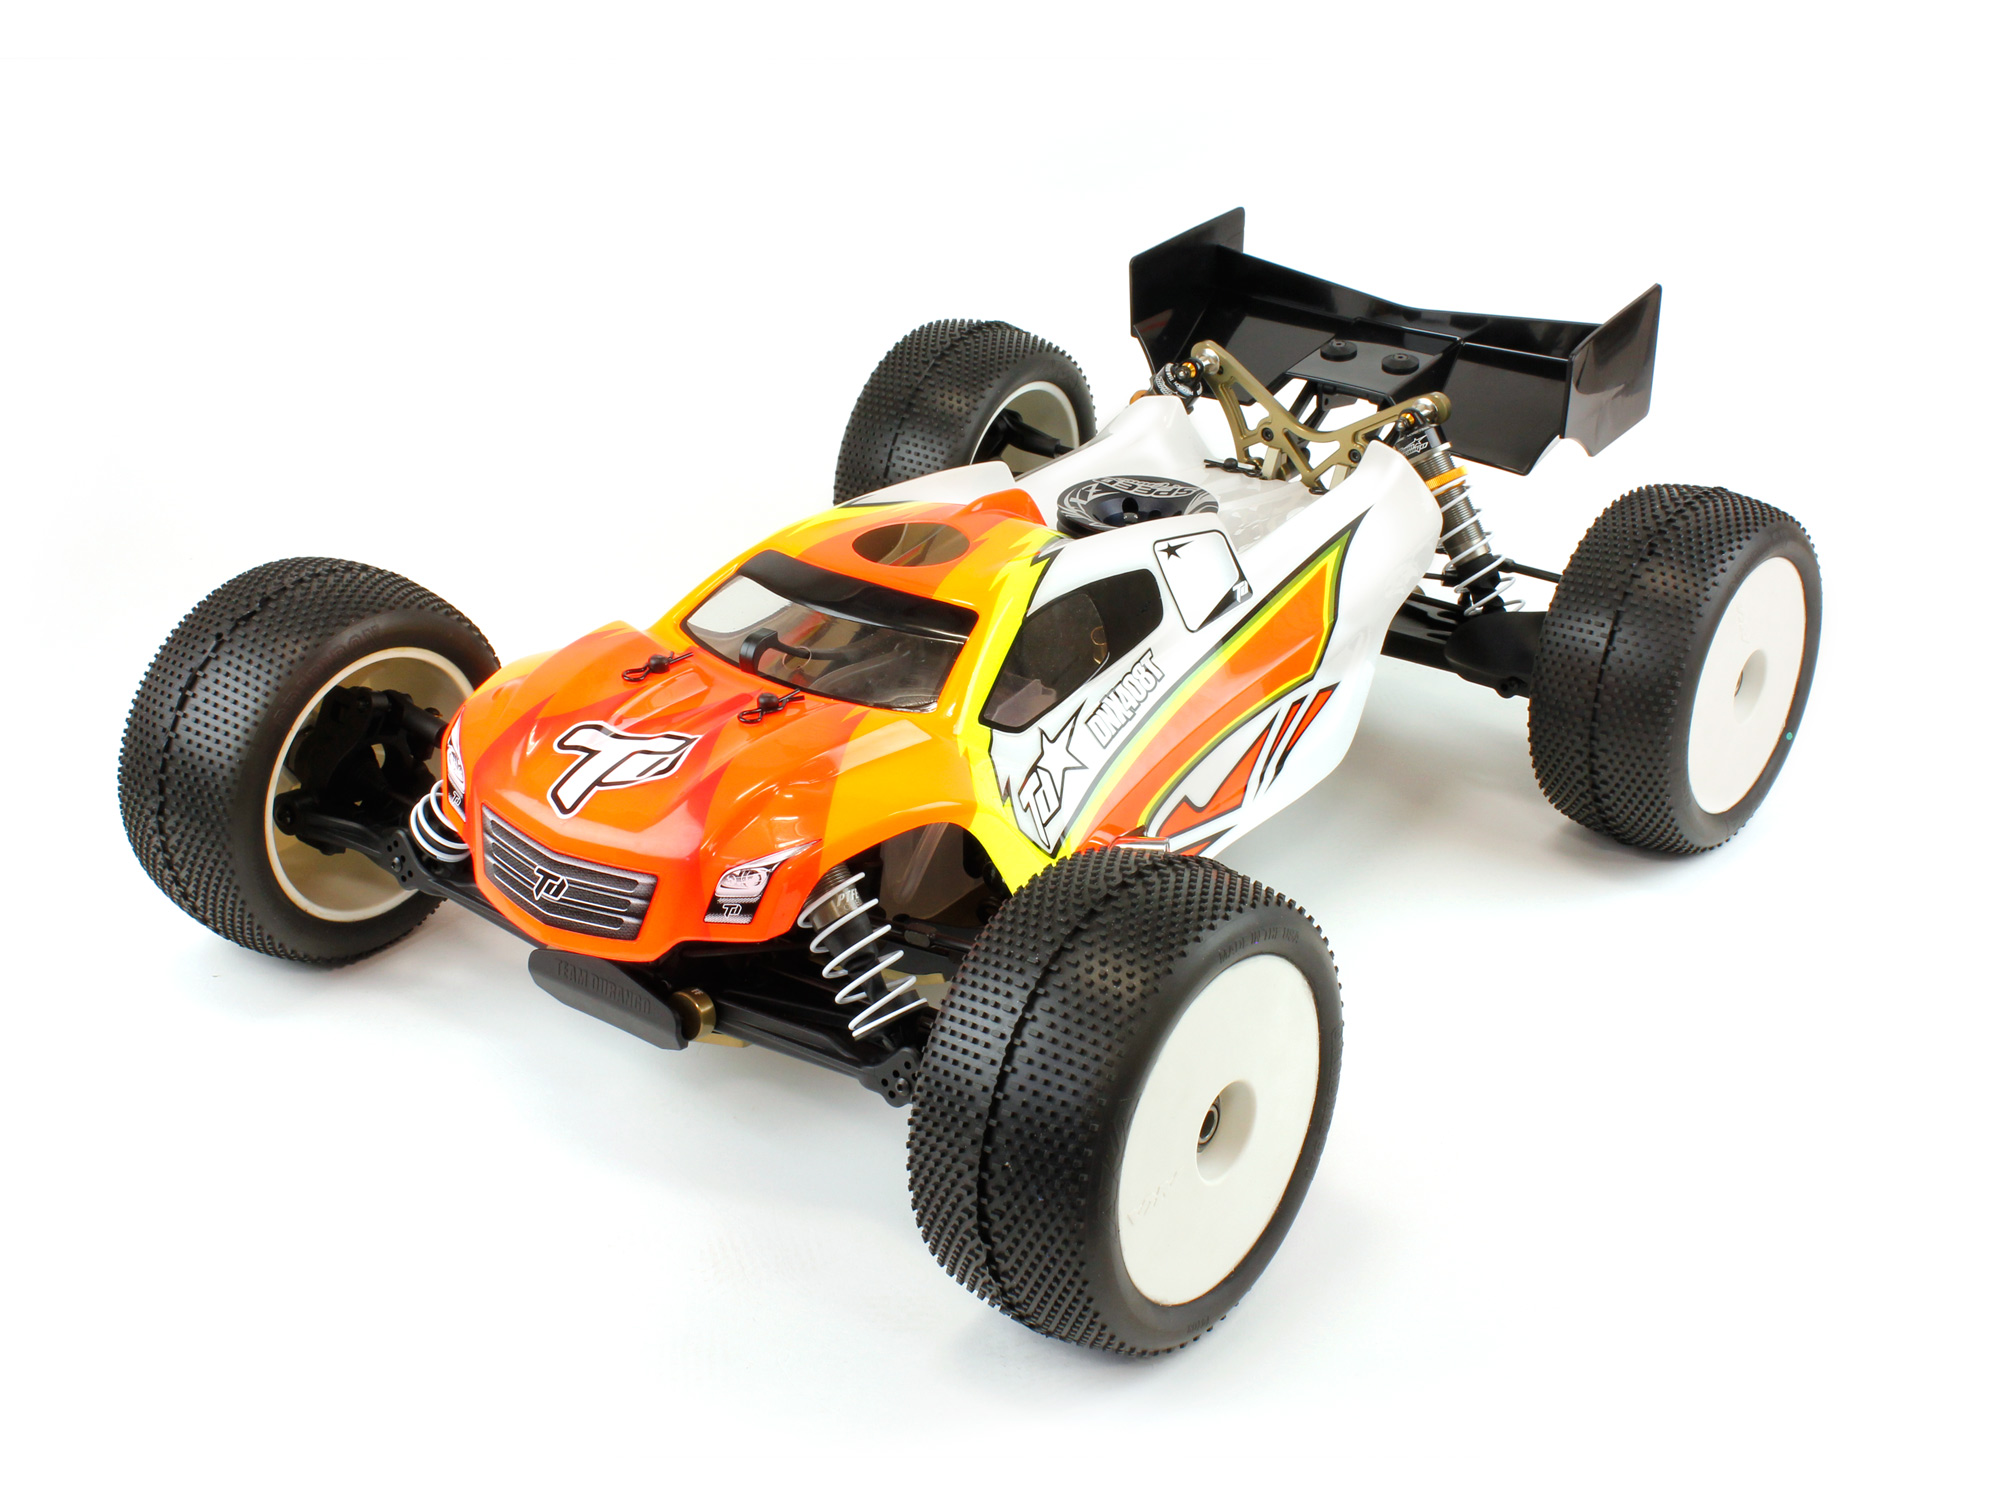 high end rc trucks with Durango Dnx408t 18 Scale Truggy on SeaSerpent besides 700hp 1967 Ford Mustang Custom By 360 Fabrication besides Product product id 430 also 196146 Clodbuster Learning How Modify together with 1973 Plymouth Barracuda Hemi Restomod.